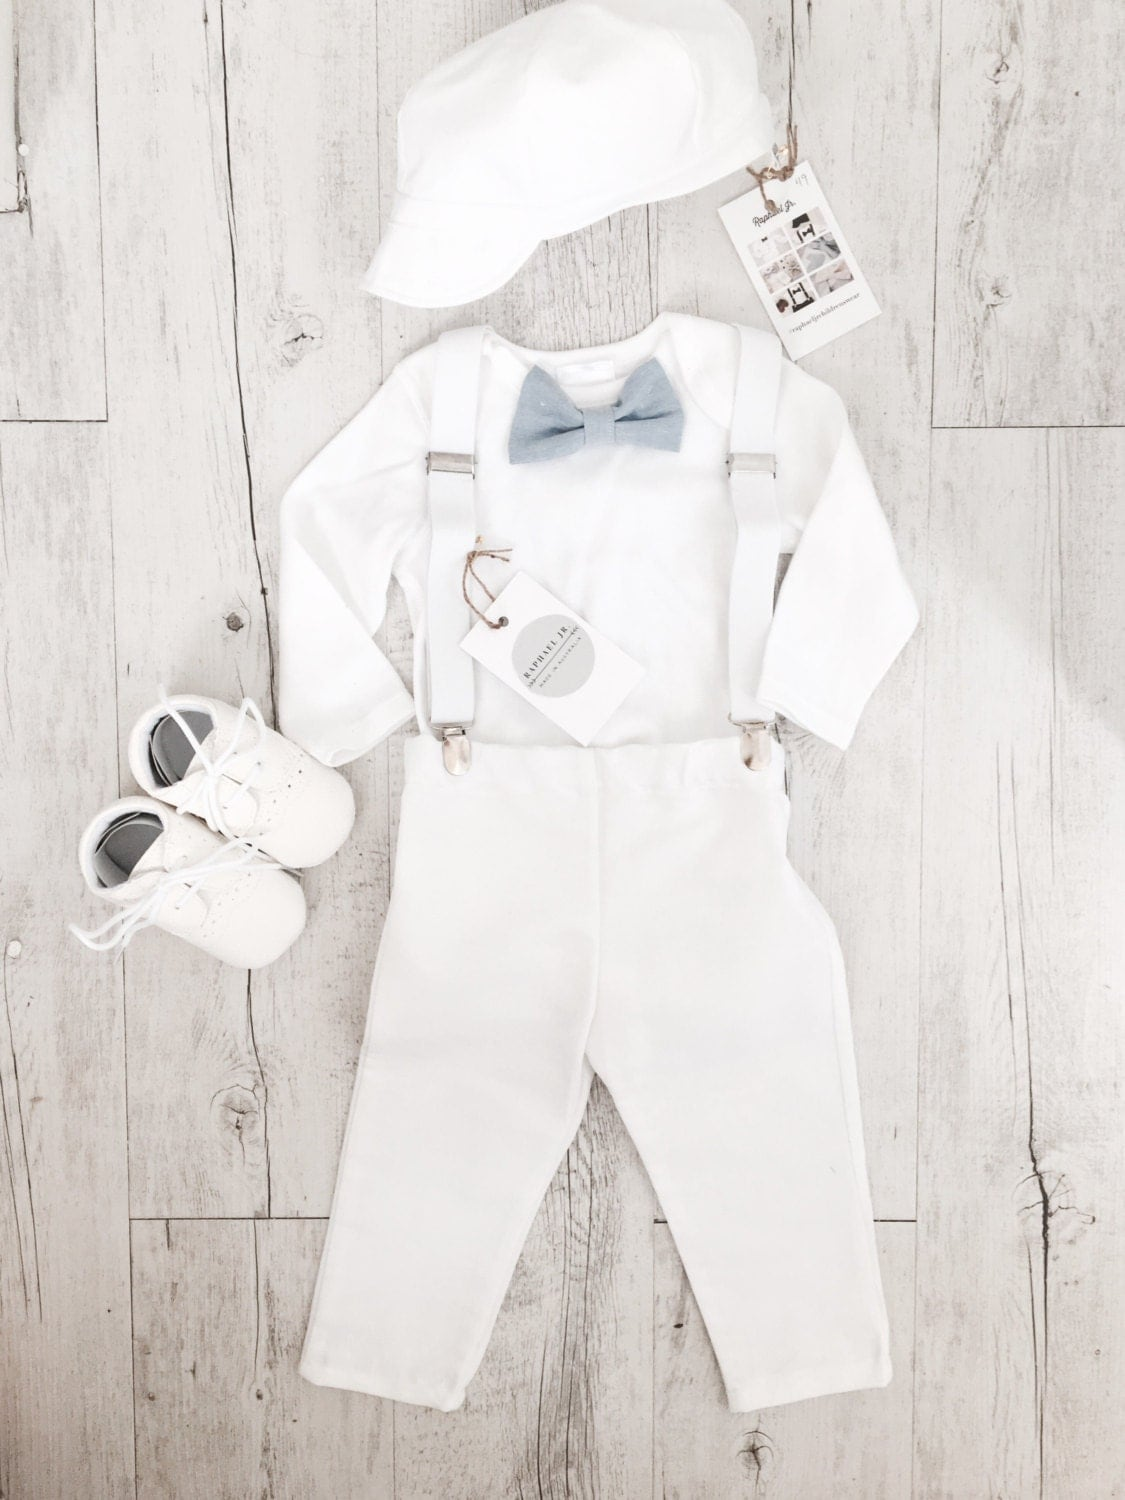 Baby boy Baptism outfit with white onesie suspenders and bow